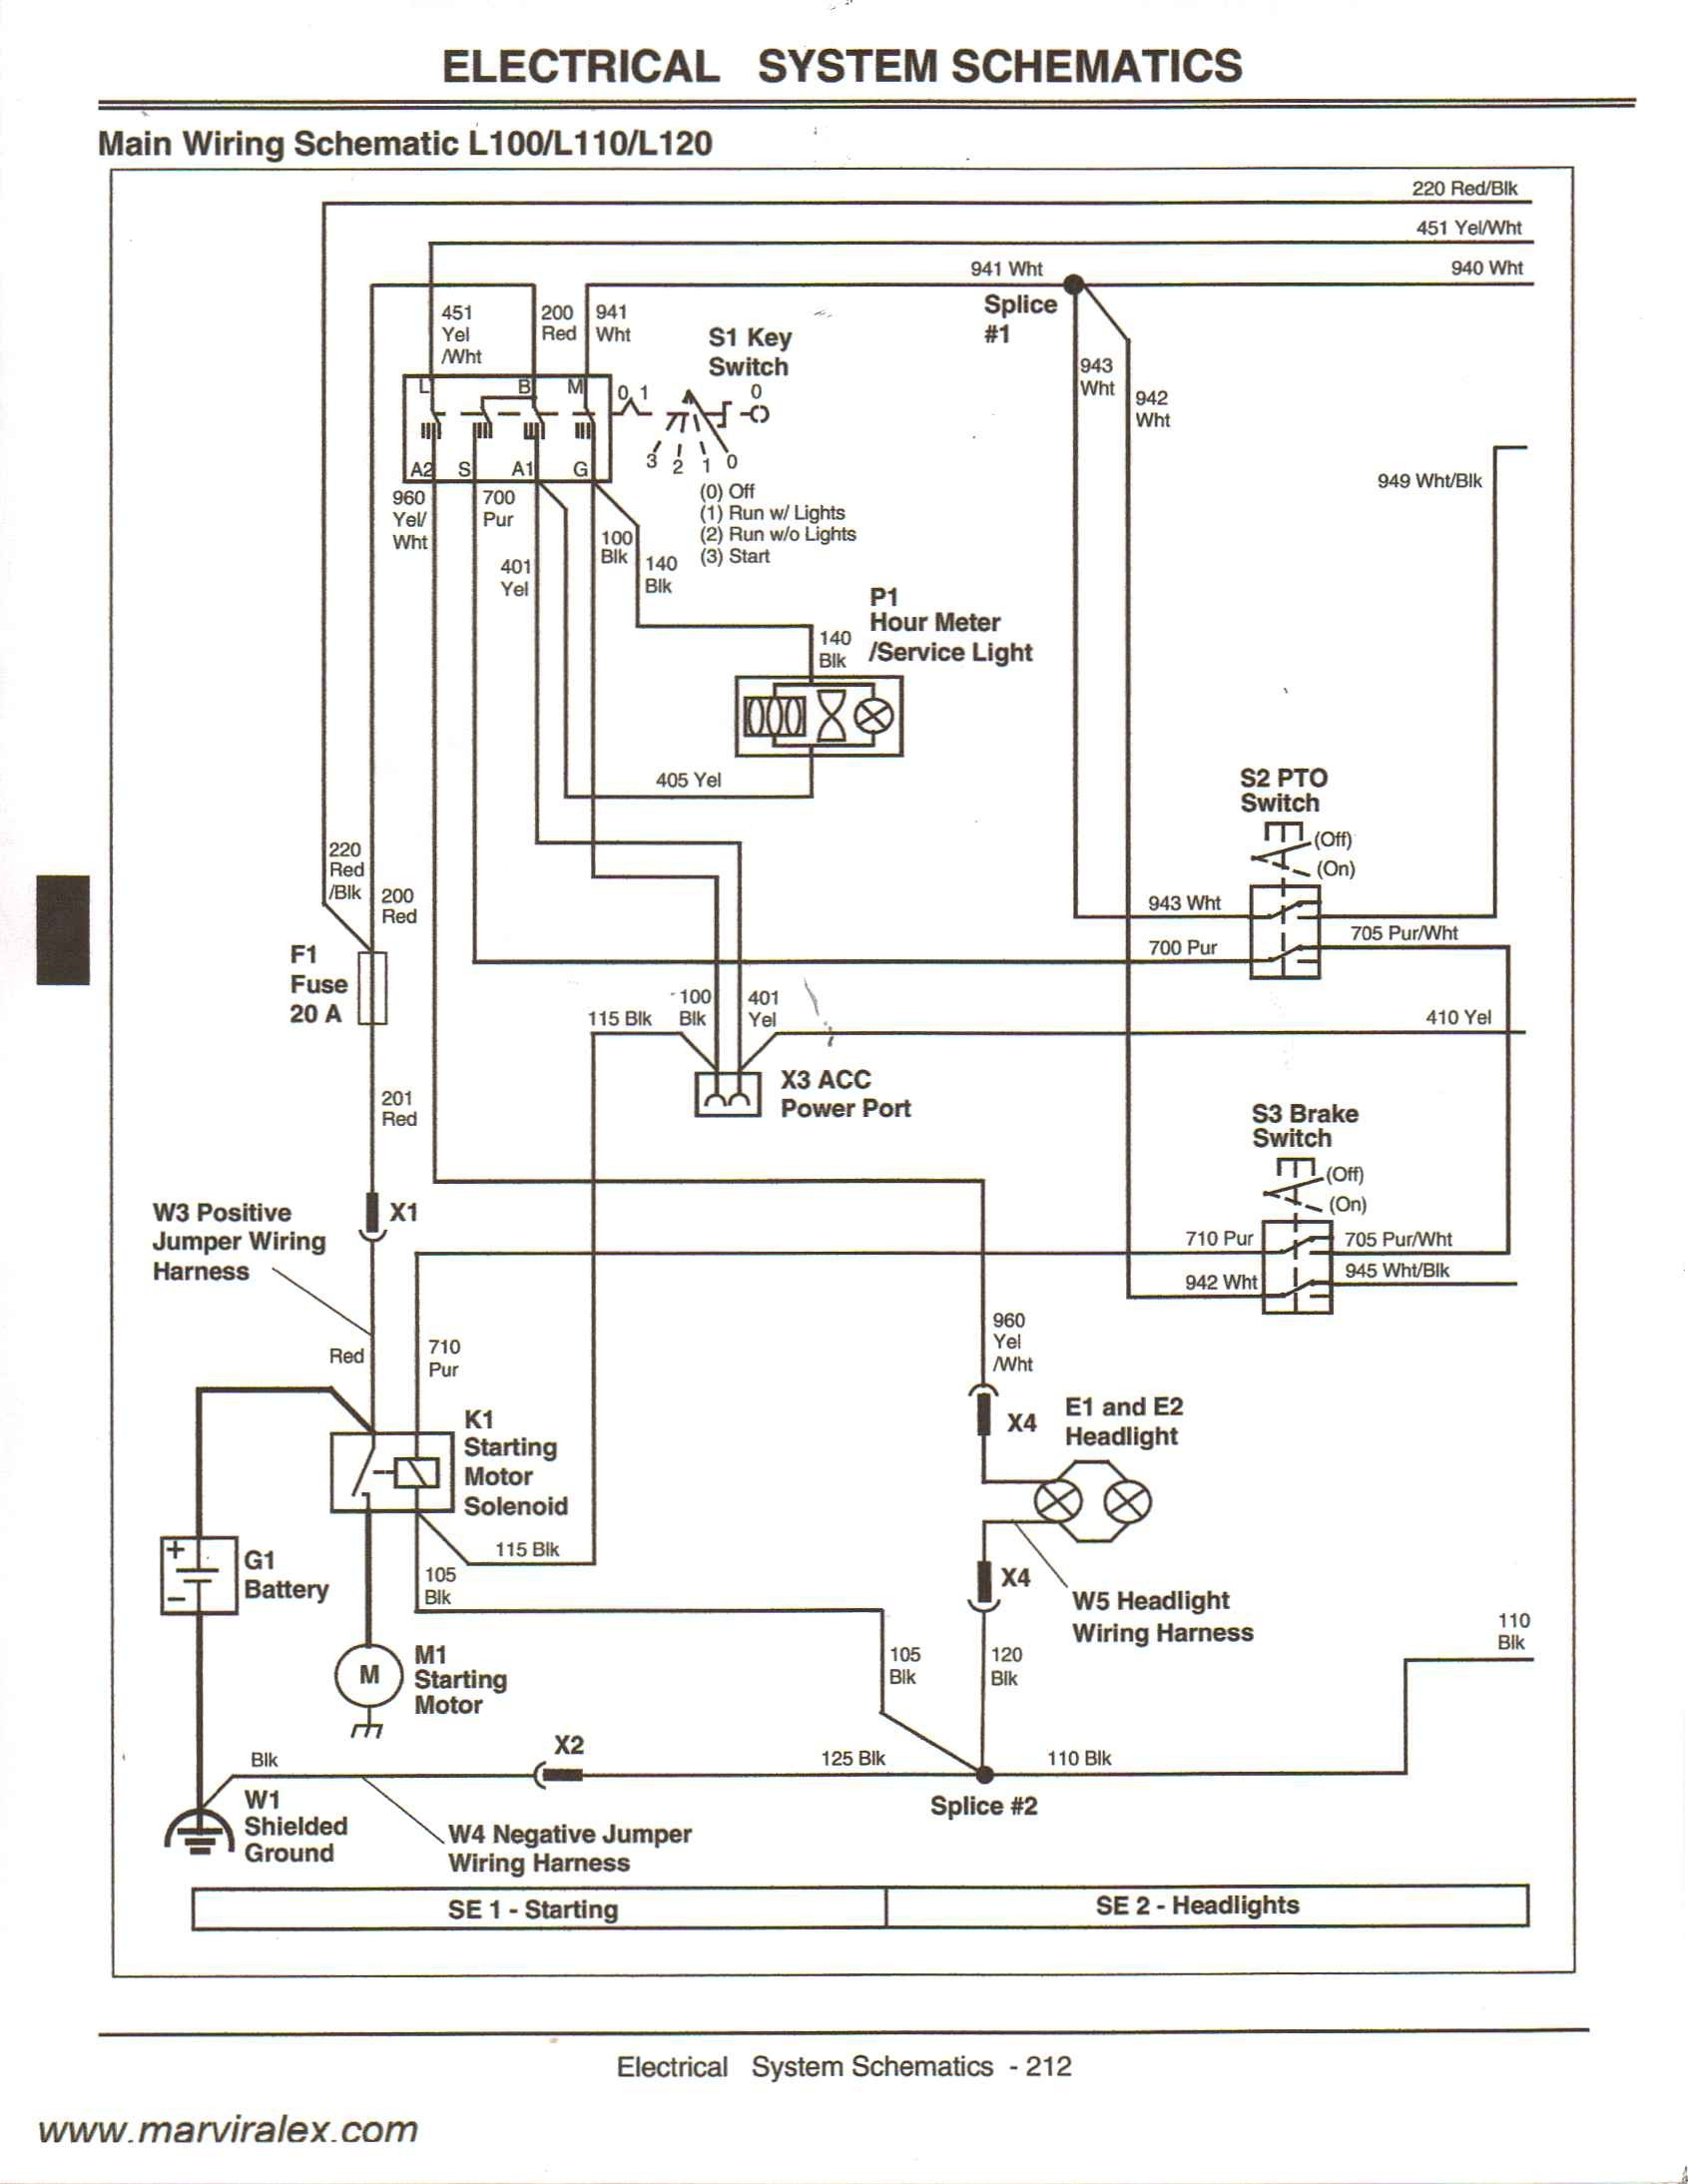 wiring diagram for stx38 john deere wiring diagram for 1968 john deere 110 john deere stx38 wiring schematic | free wiring diagram